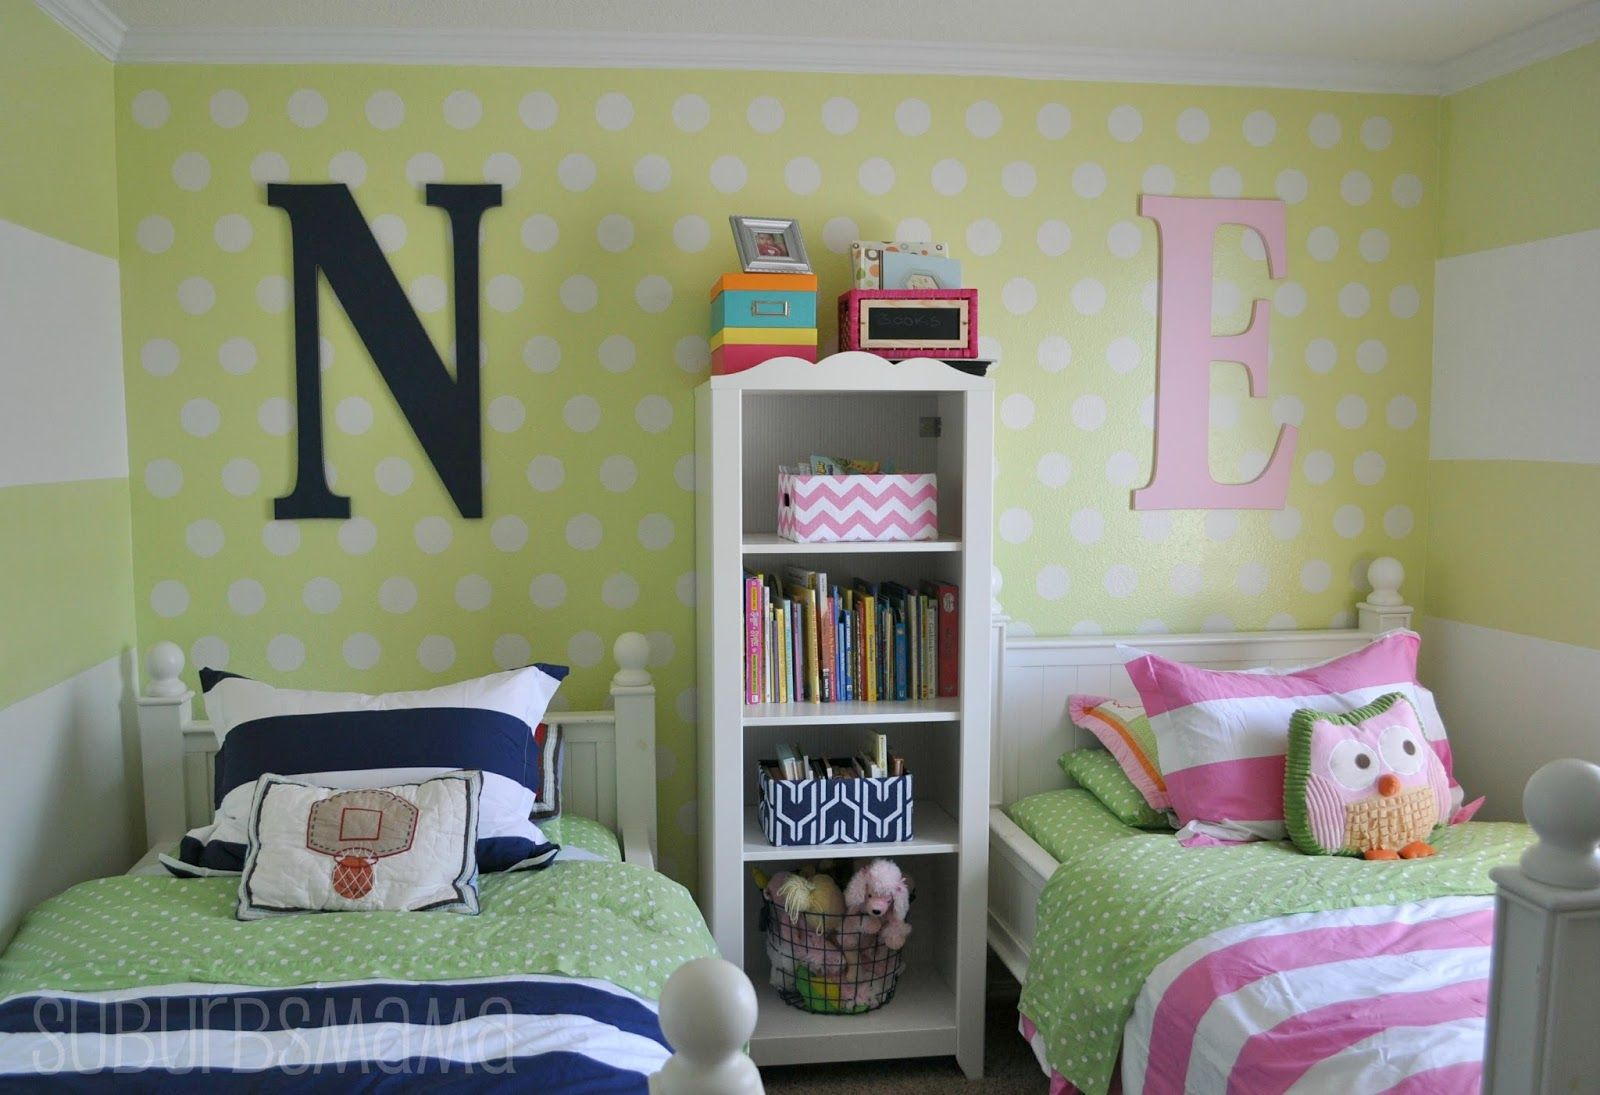 16 Gorgeous Boy Girl Room Ideas : Beautiful Boy And Girl Shared Bedroom  With Two Single Size Beds Navy And Pink Stripes Pillows Blankets Plus  Basketball ... Part 67